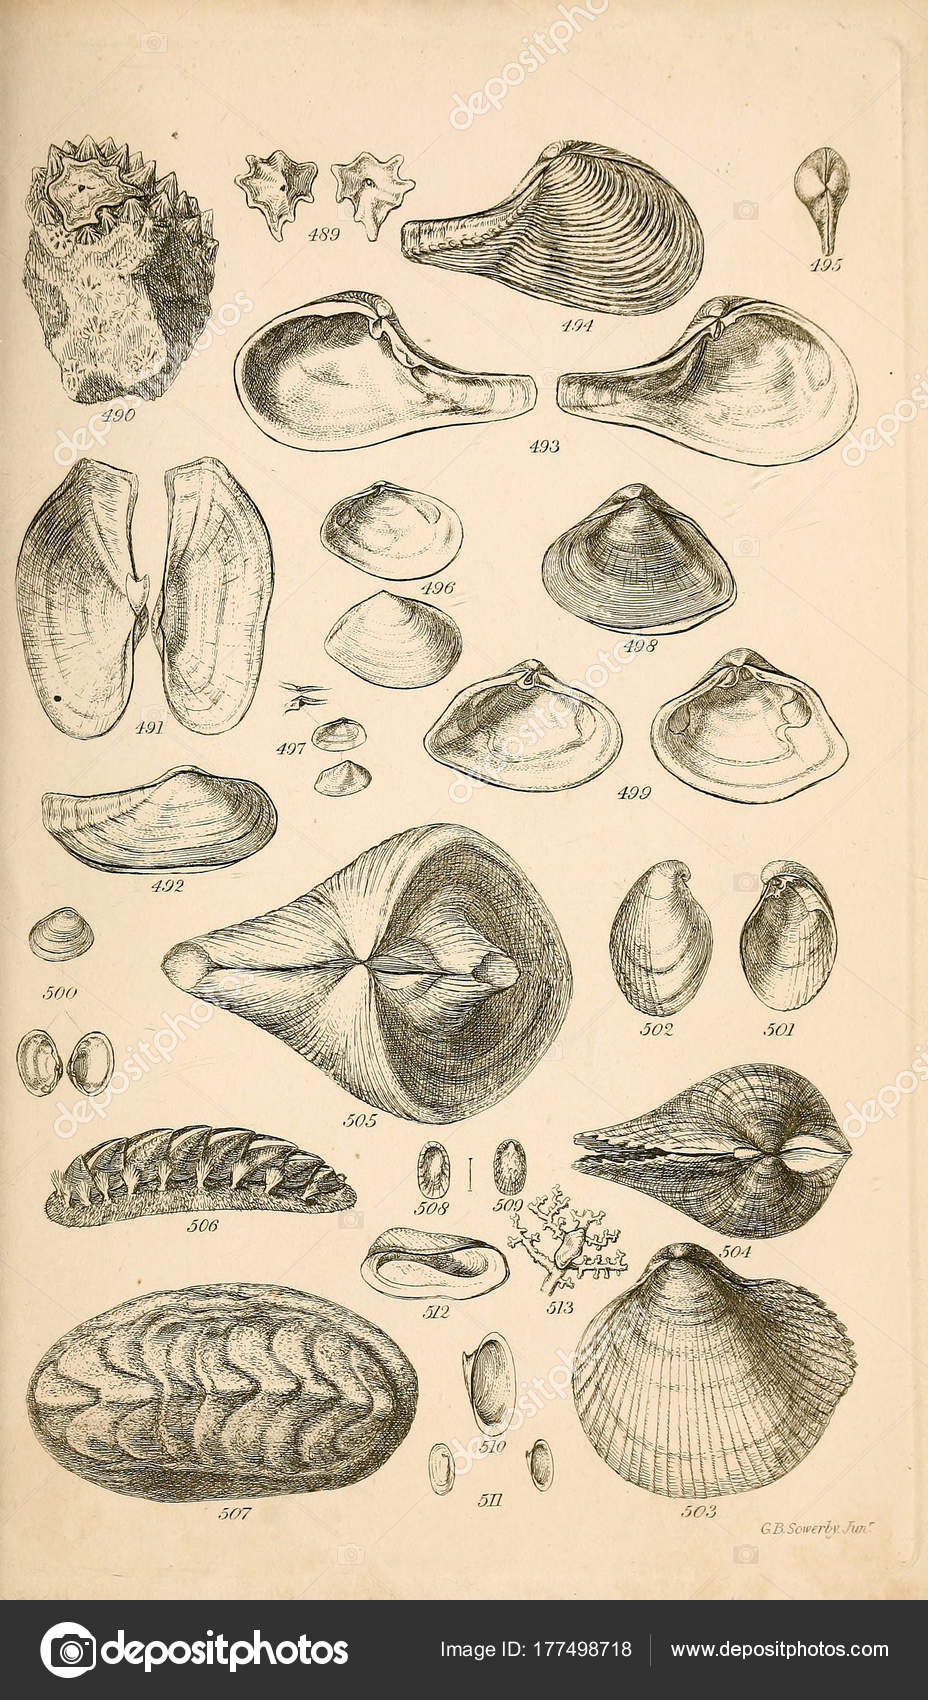 Illustration Shells Conchological Manual Sowerby George